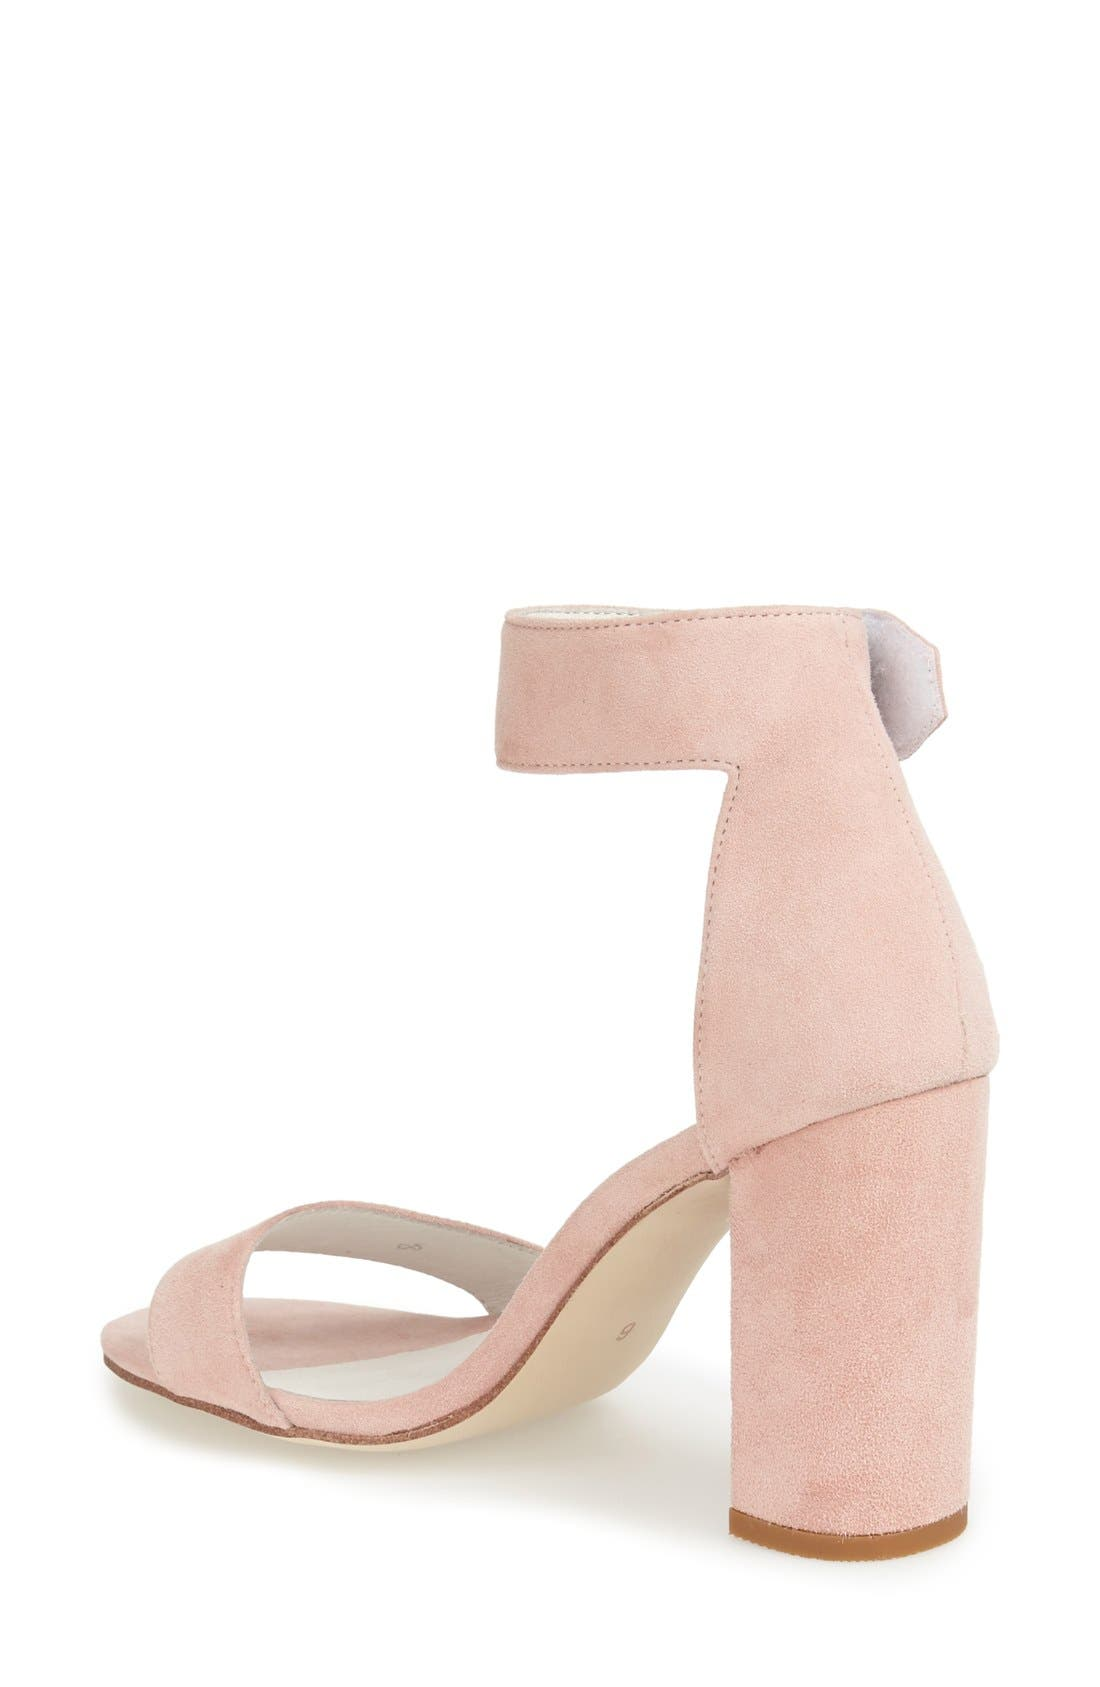 'Lindsay' Ankle Strap Sandal,                             Alternate thumbnail 60, color,